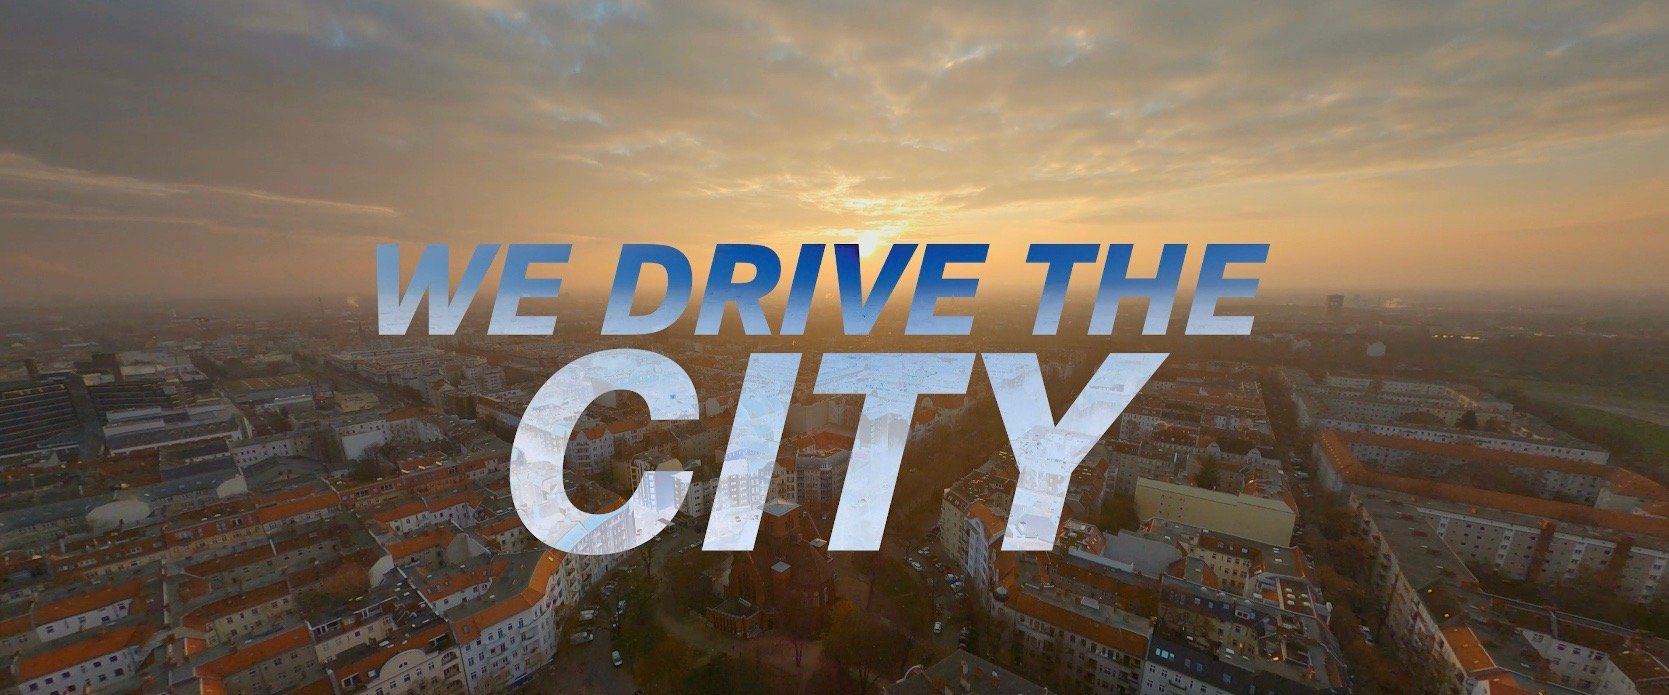 we drive the city lettering